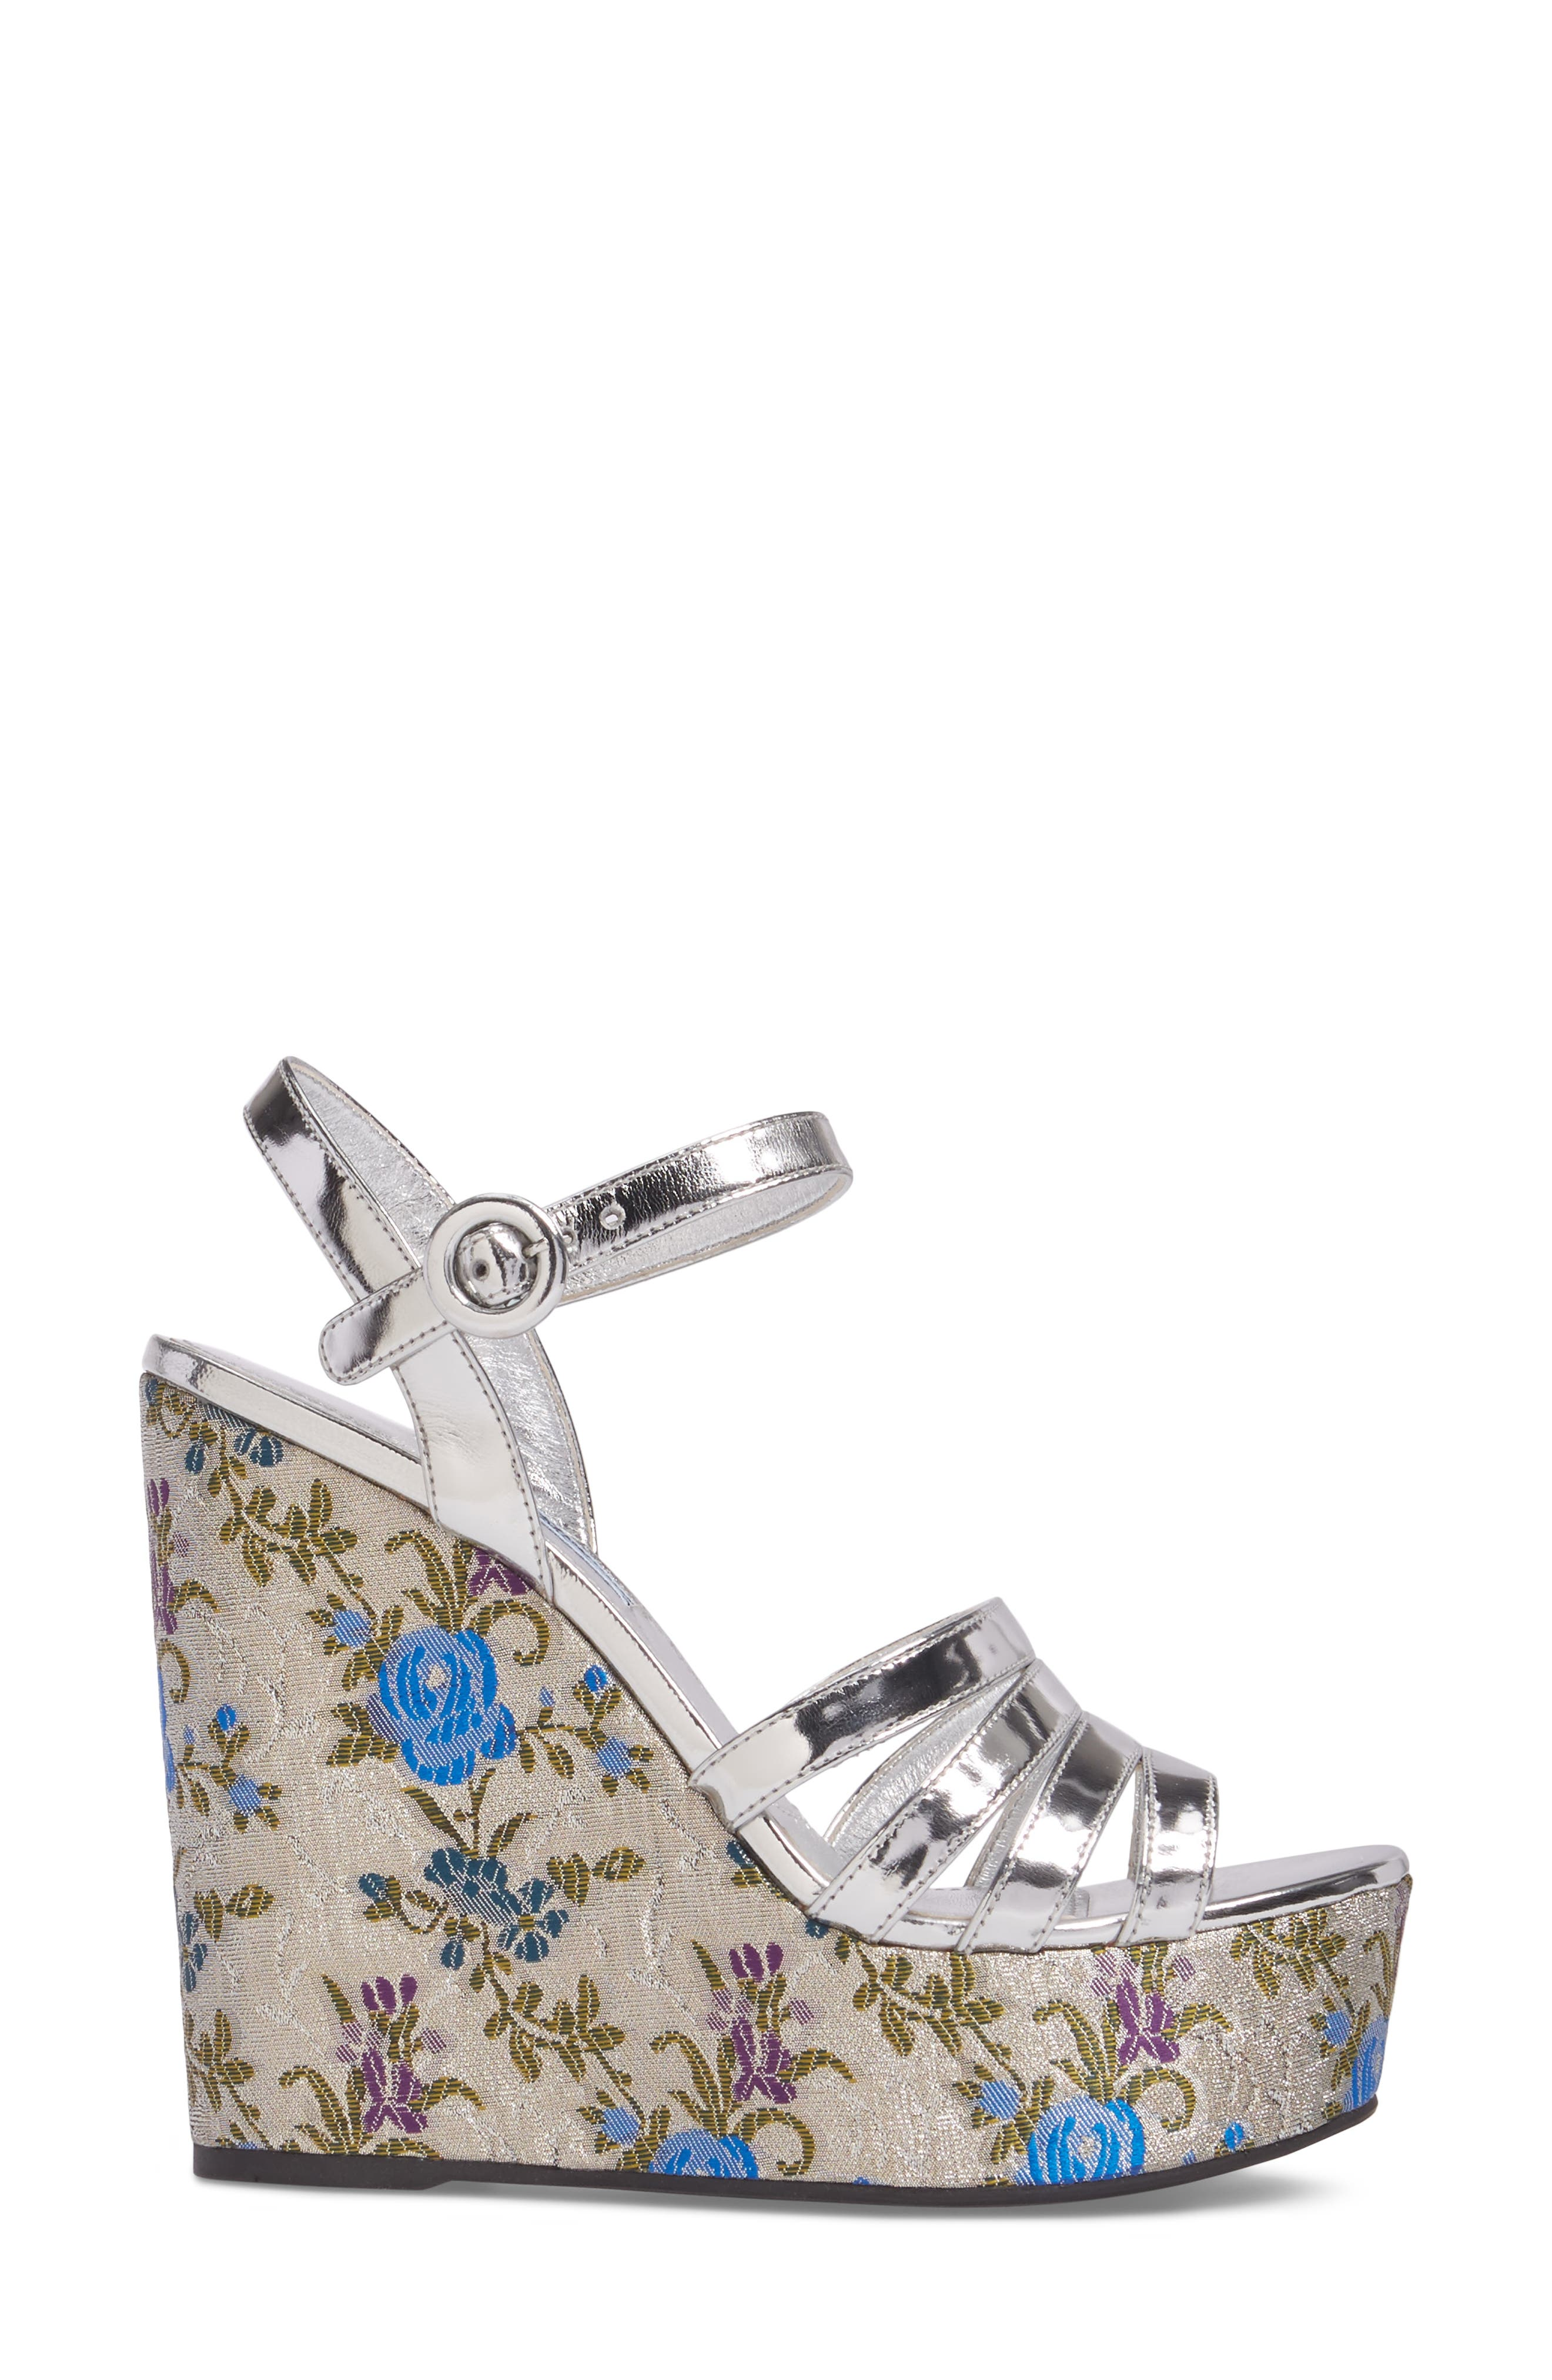 Floral Wedge Platform Sandals,                             Alternate thumbnail 3, color,                             Silver/ Blue